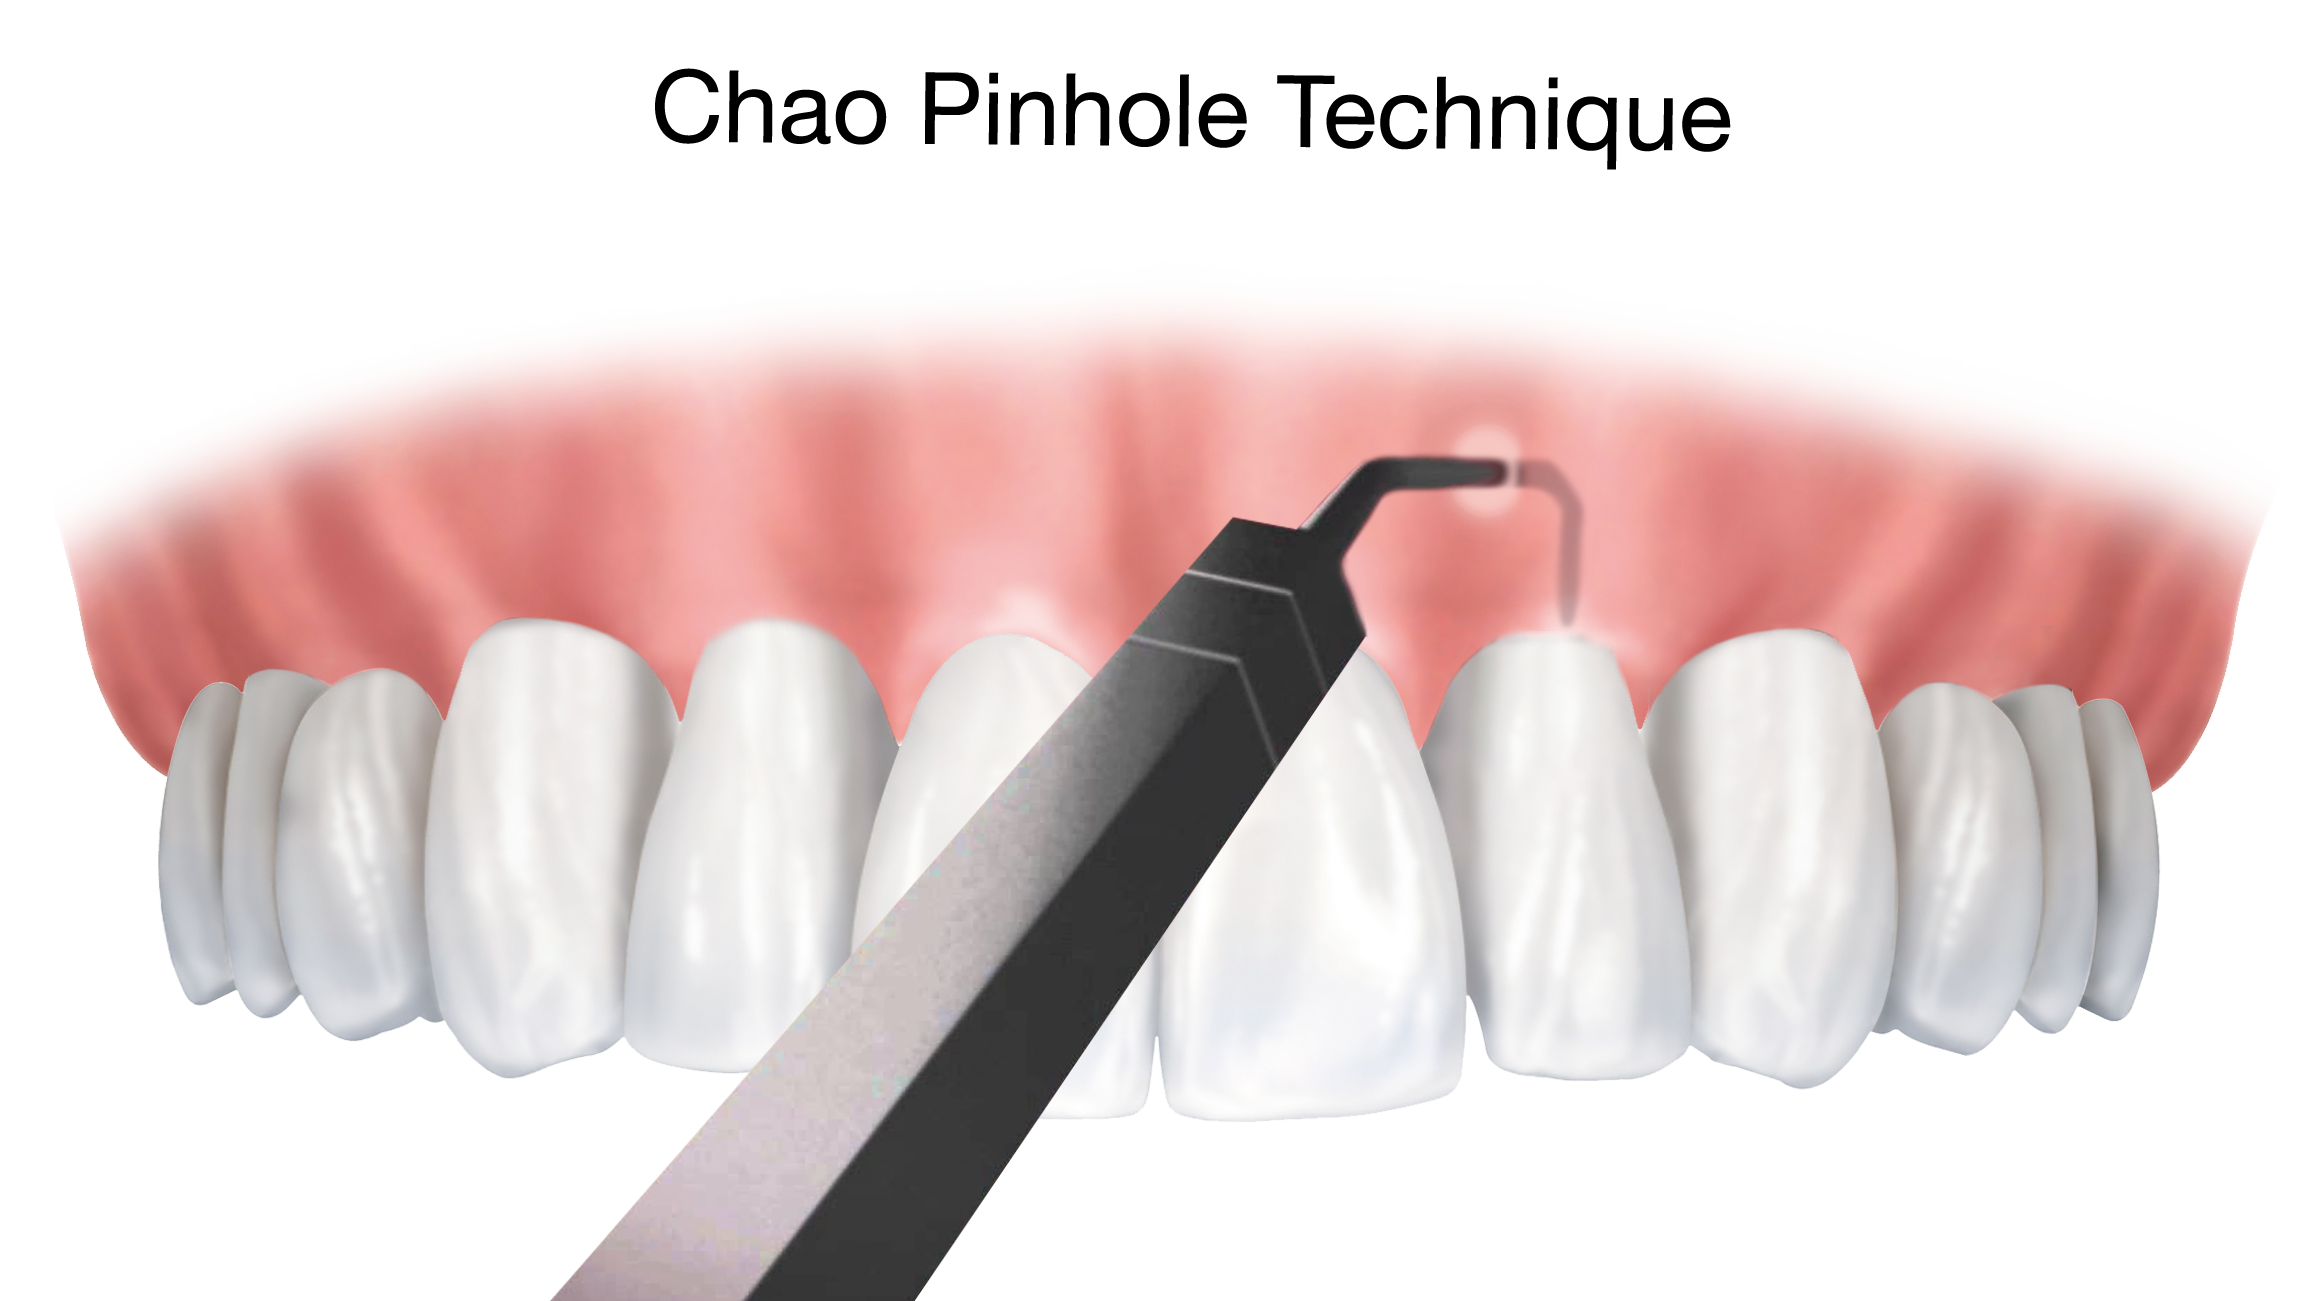 The Chao Pinhole Surgical Technique for gum recession